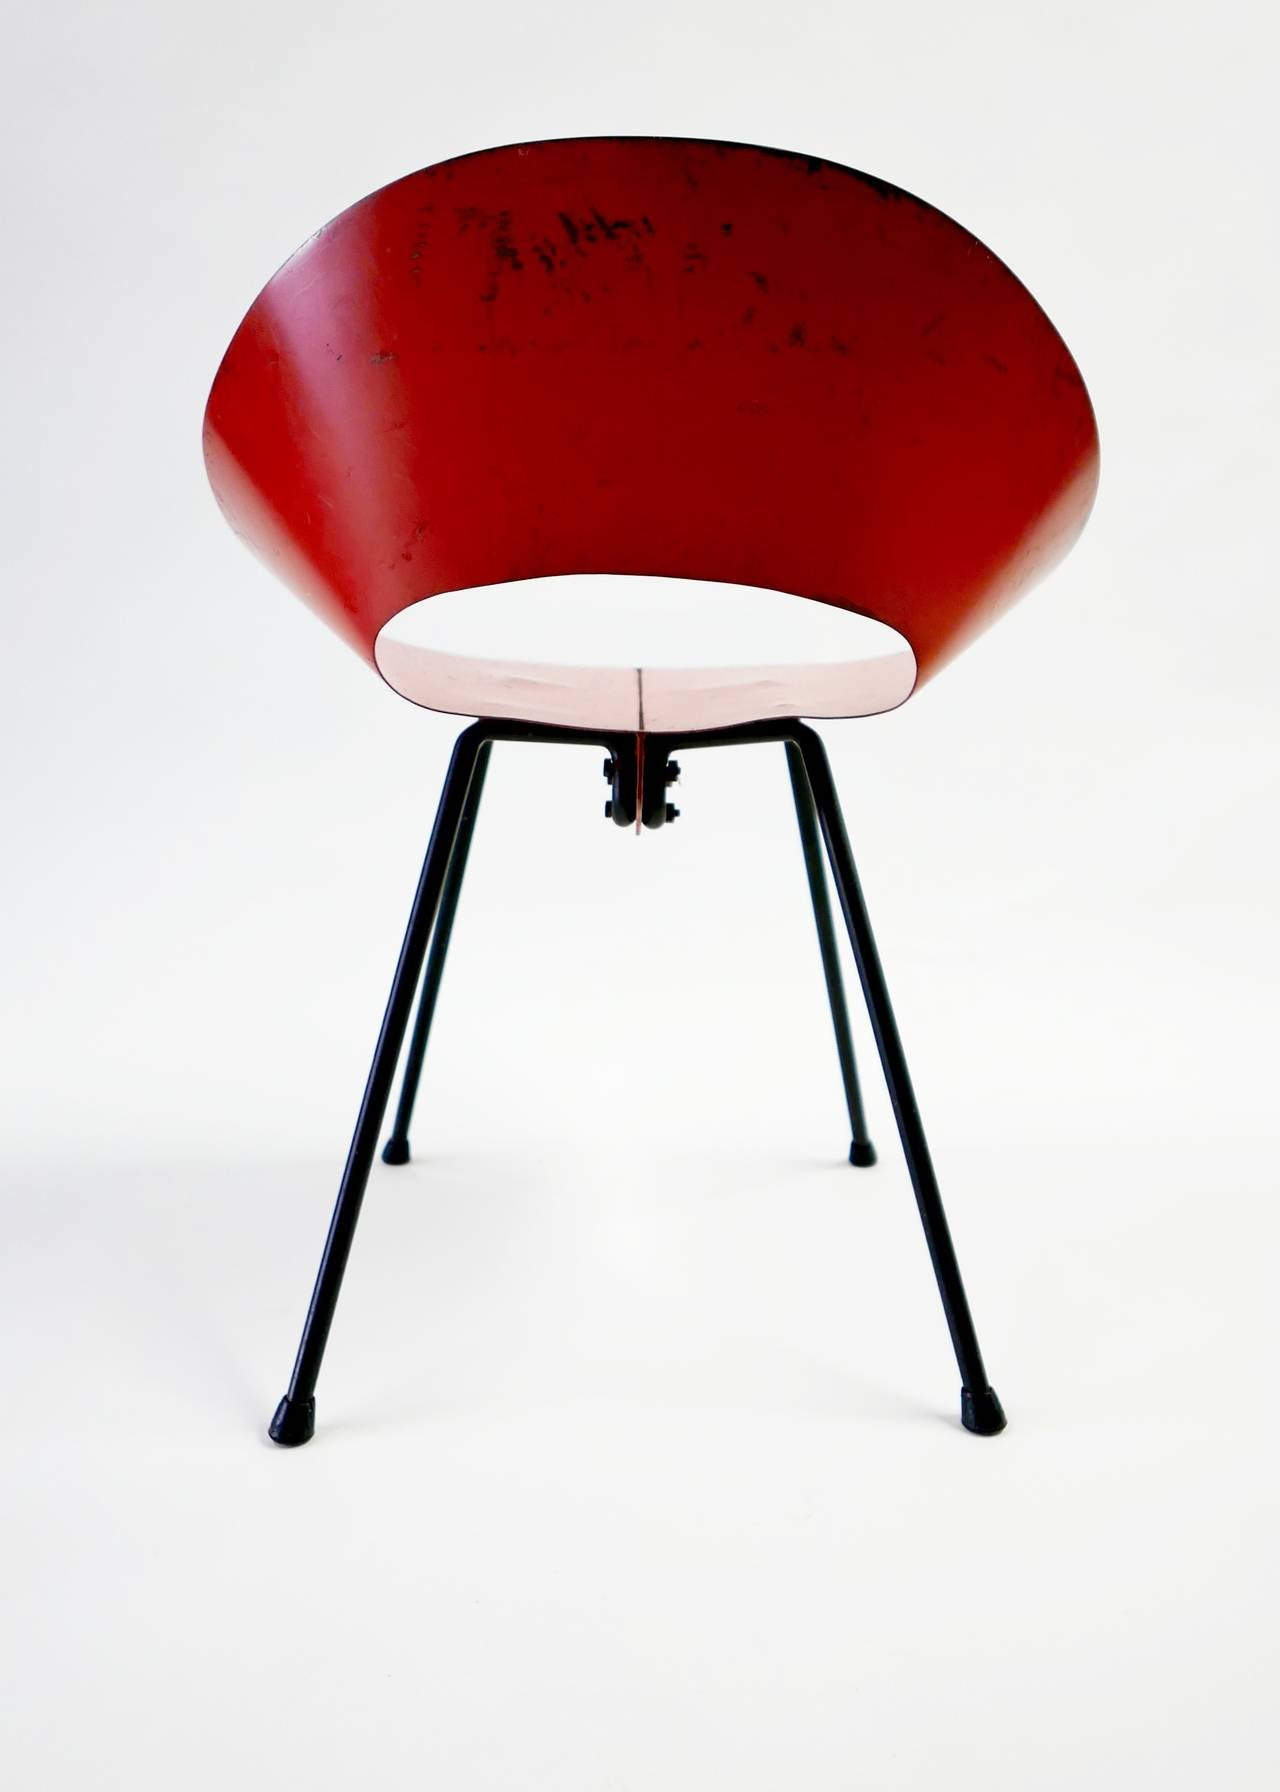 Donald Knorr Chair Knoll Associates 1948 For Sale At 1stdibs